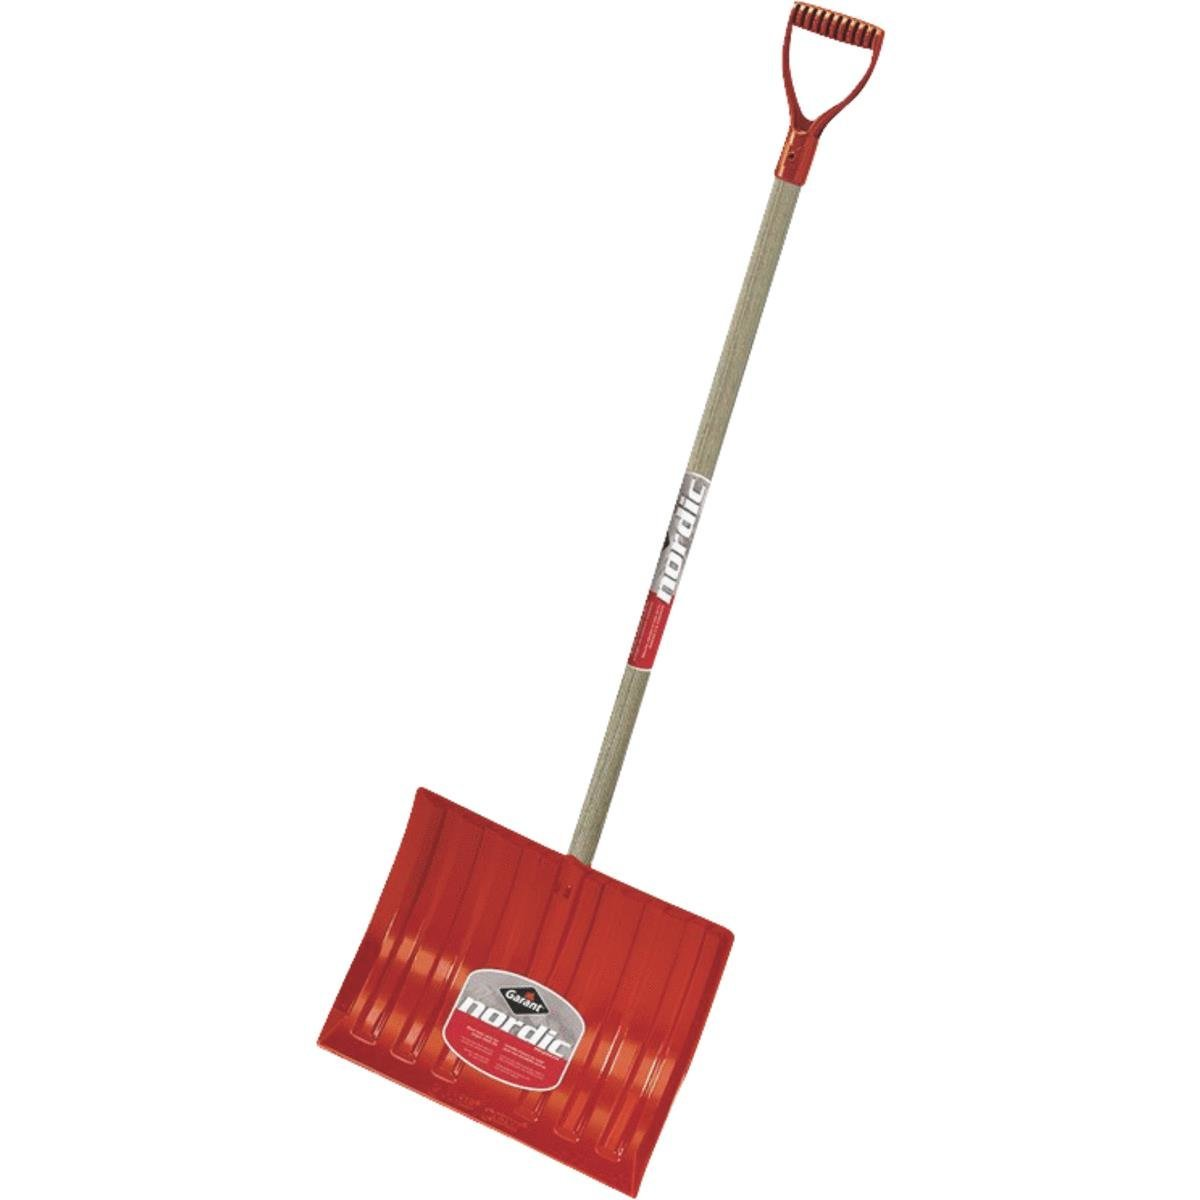 Garant Nordic 18 Inch Poly Blade Snow Shovel: Review